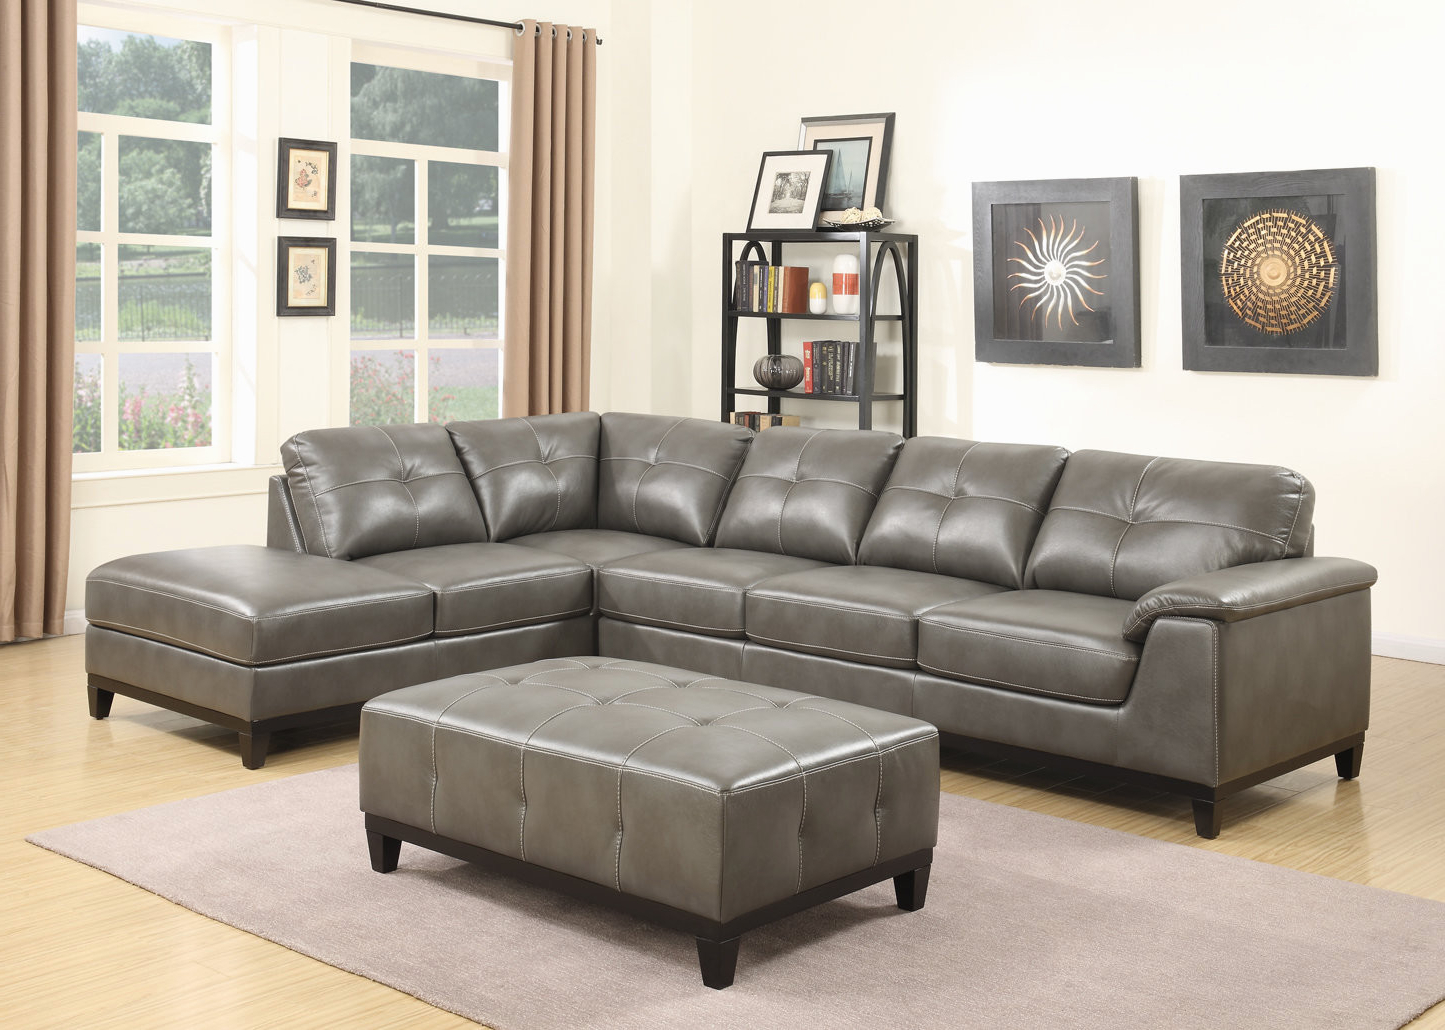 Most Recently Released Living Room Sofa With Chaise Beautiful Trent Austin Design Lonato In Aquarius Light Grey 2 Piece Sectionals With Raf Chaise (View 7 of 20)